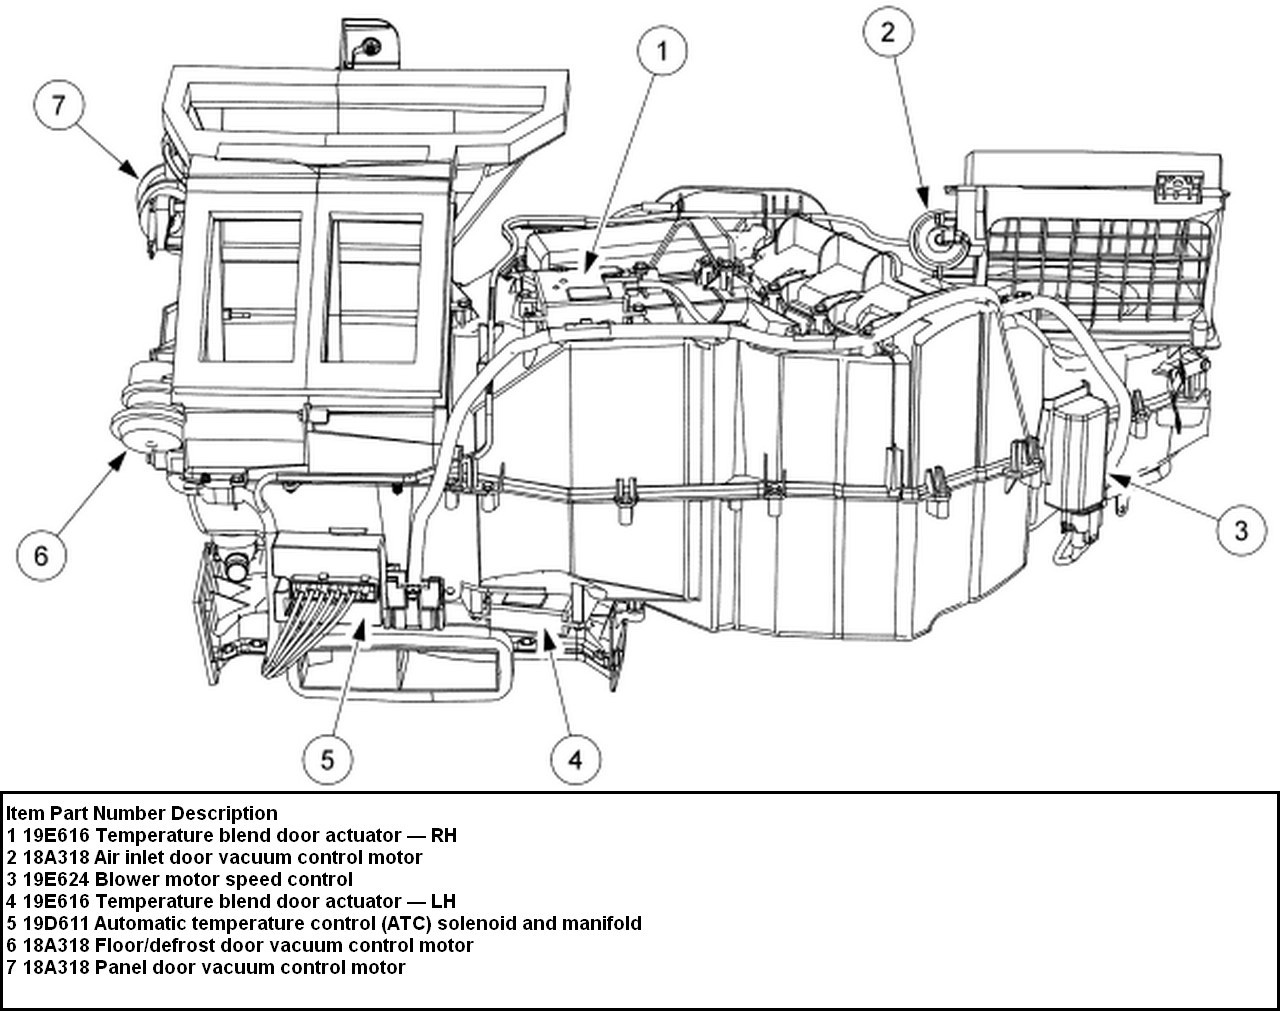 hight resolution of air suspension furthermore ford explorer rear suspension diagram on 2002 ford explorer ac system diagram moreover 2003 ford expedition air